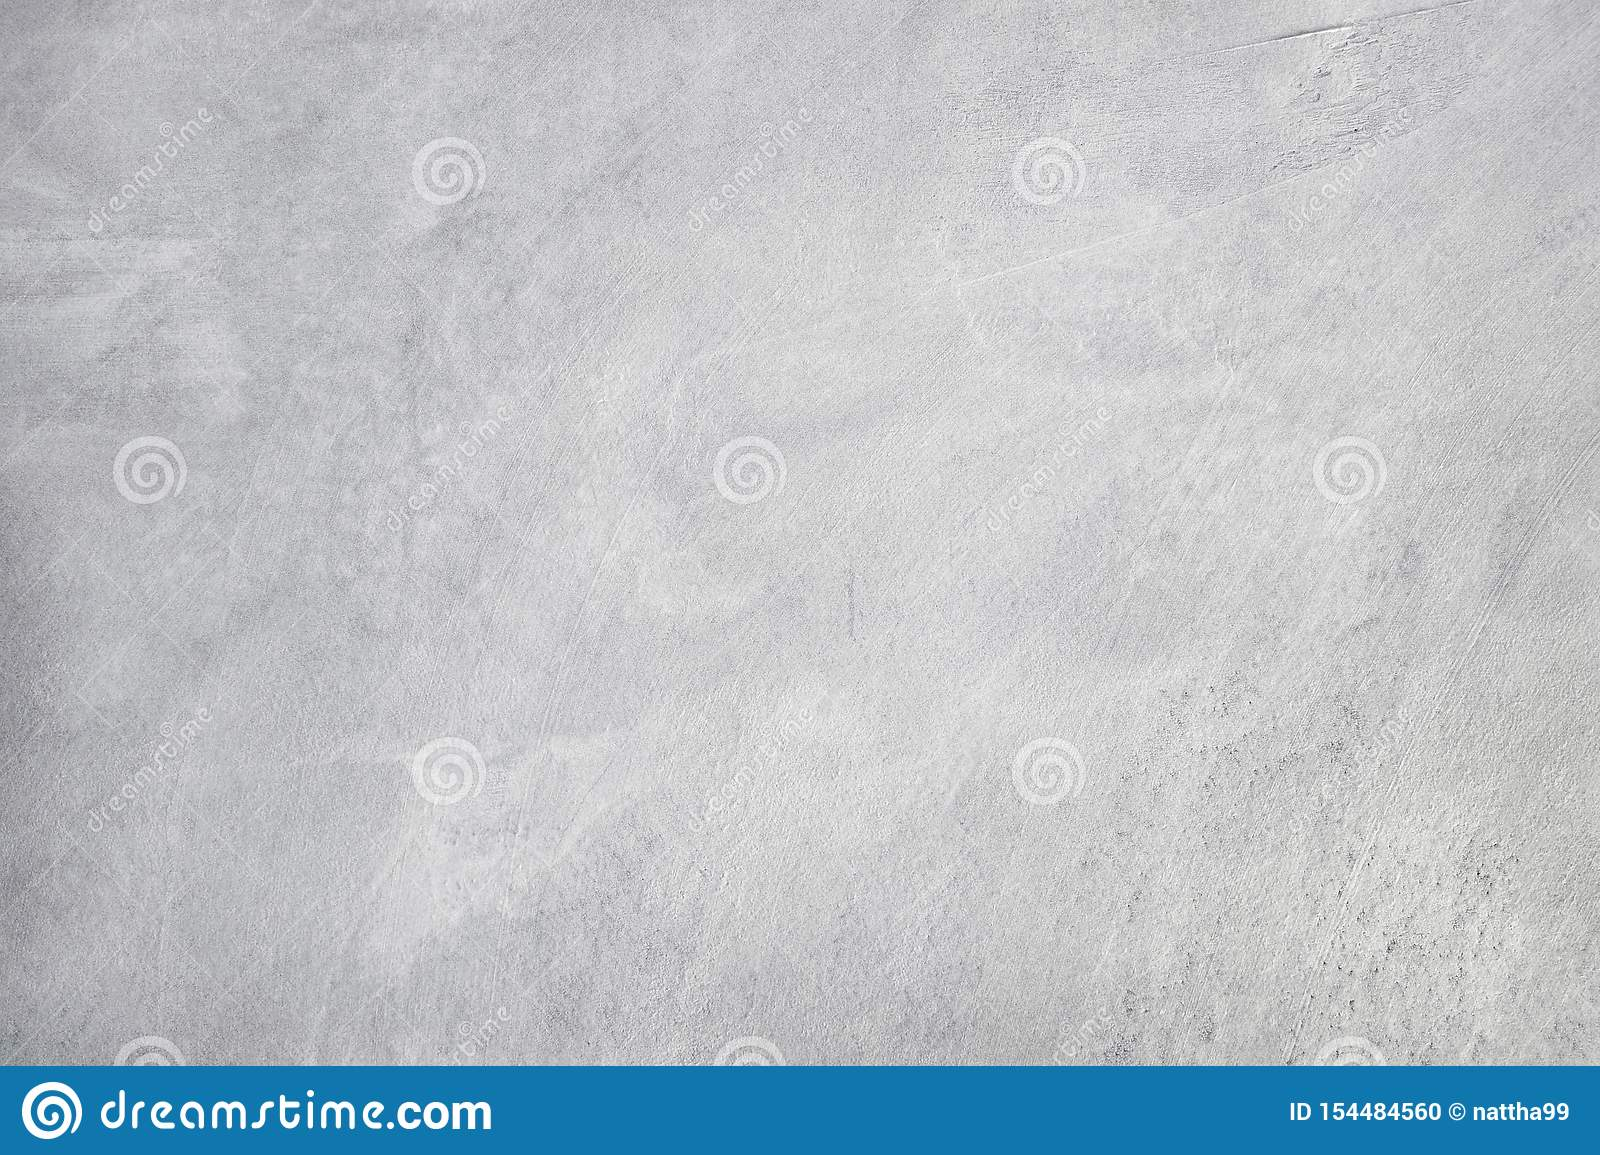 Old grungy texture, white grey color concrete cement wall with detail of rough stucco and crack for background and design art work